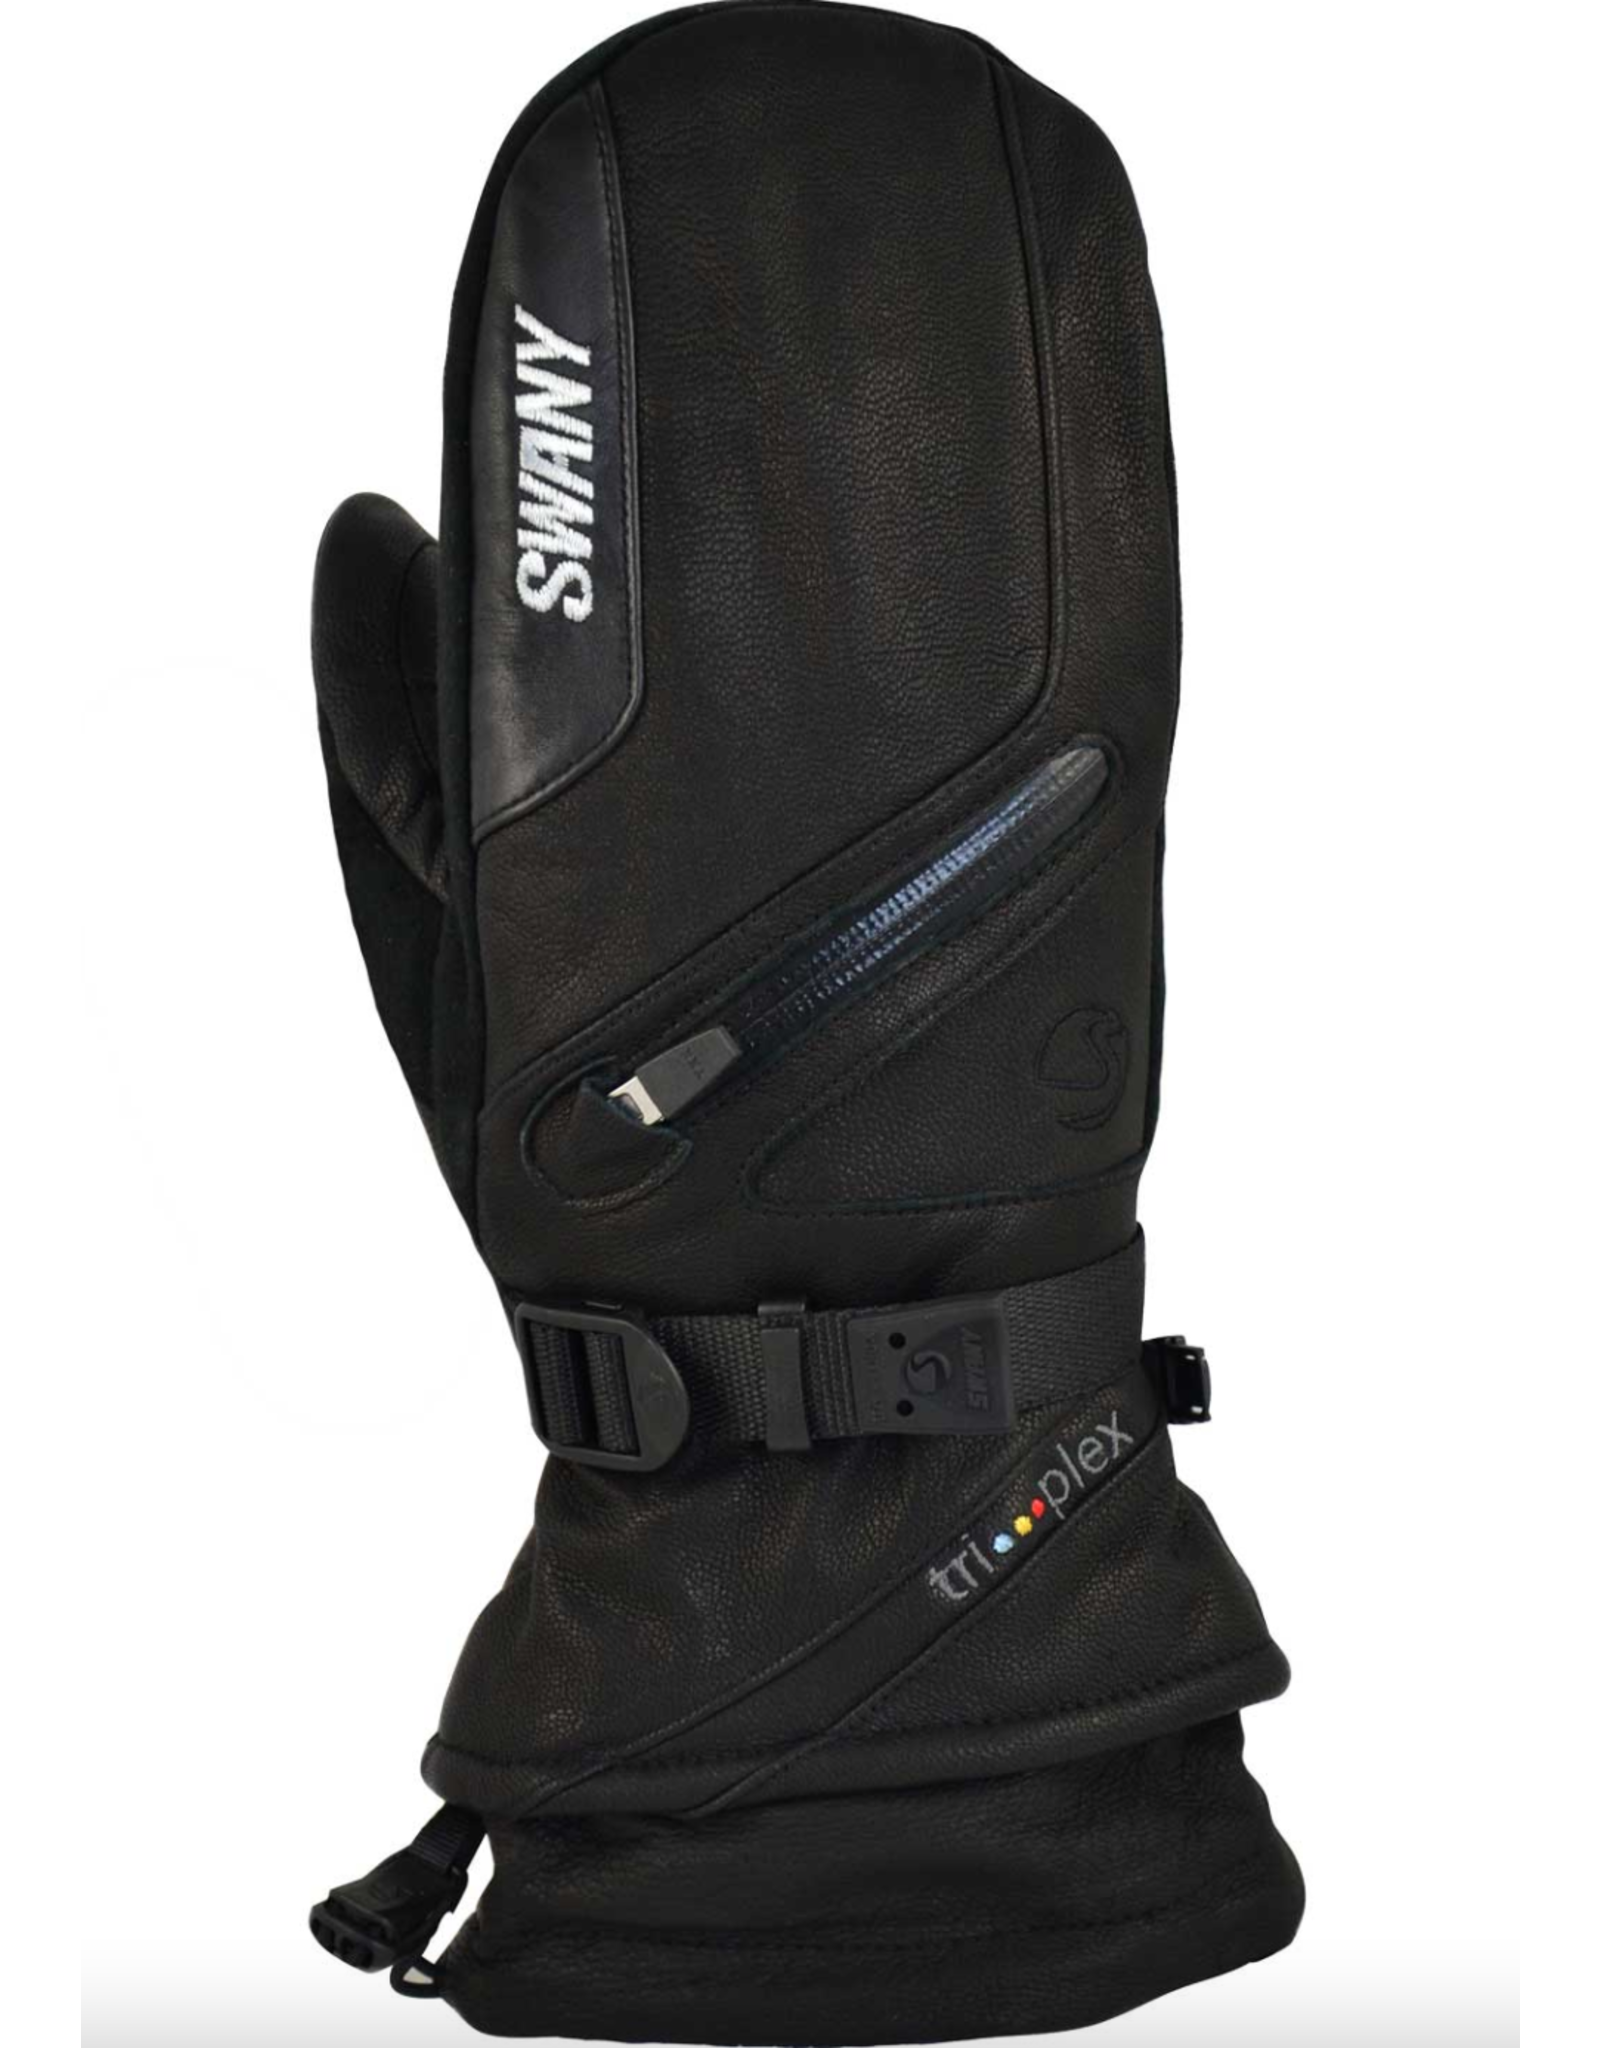 Swany X-CELL Gloves & Mitts 2022